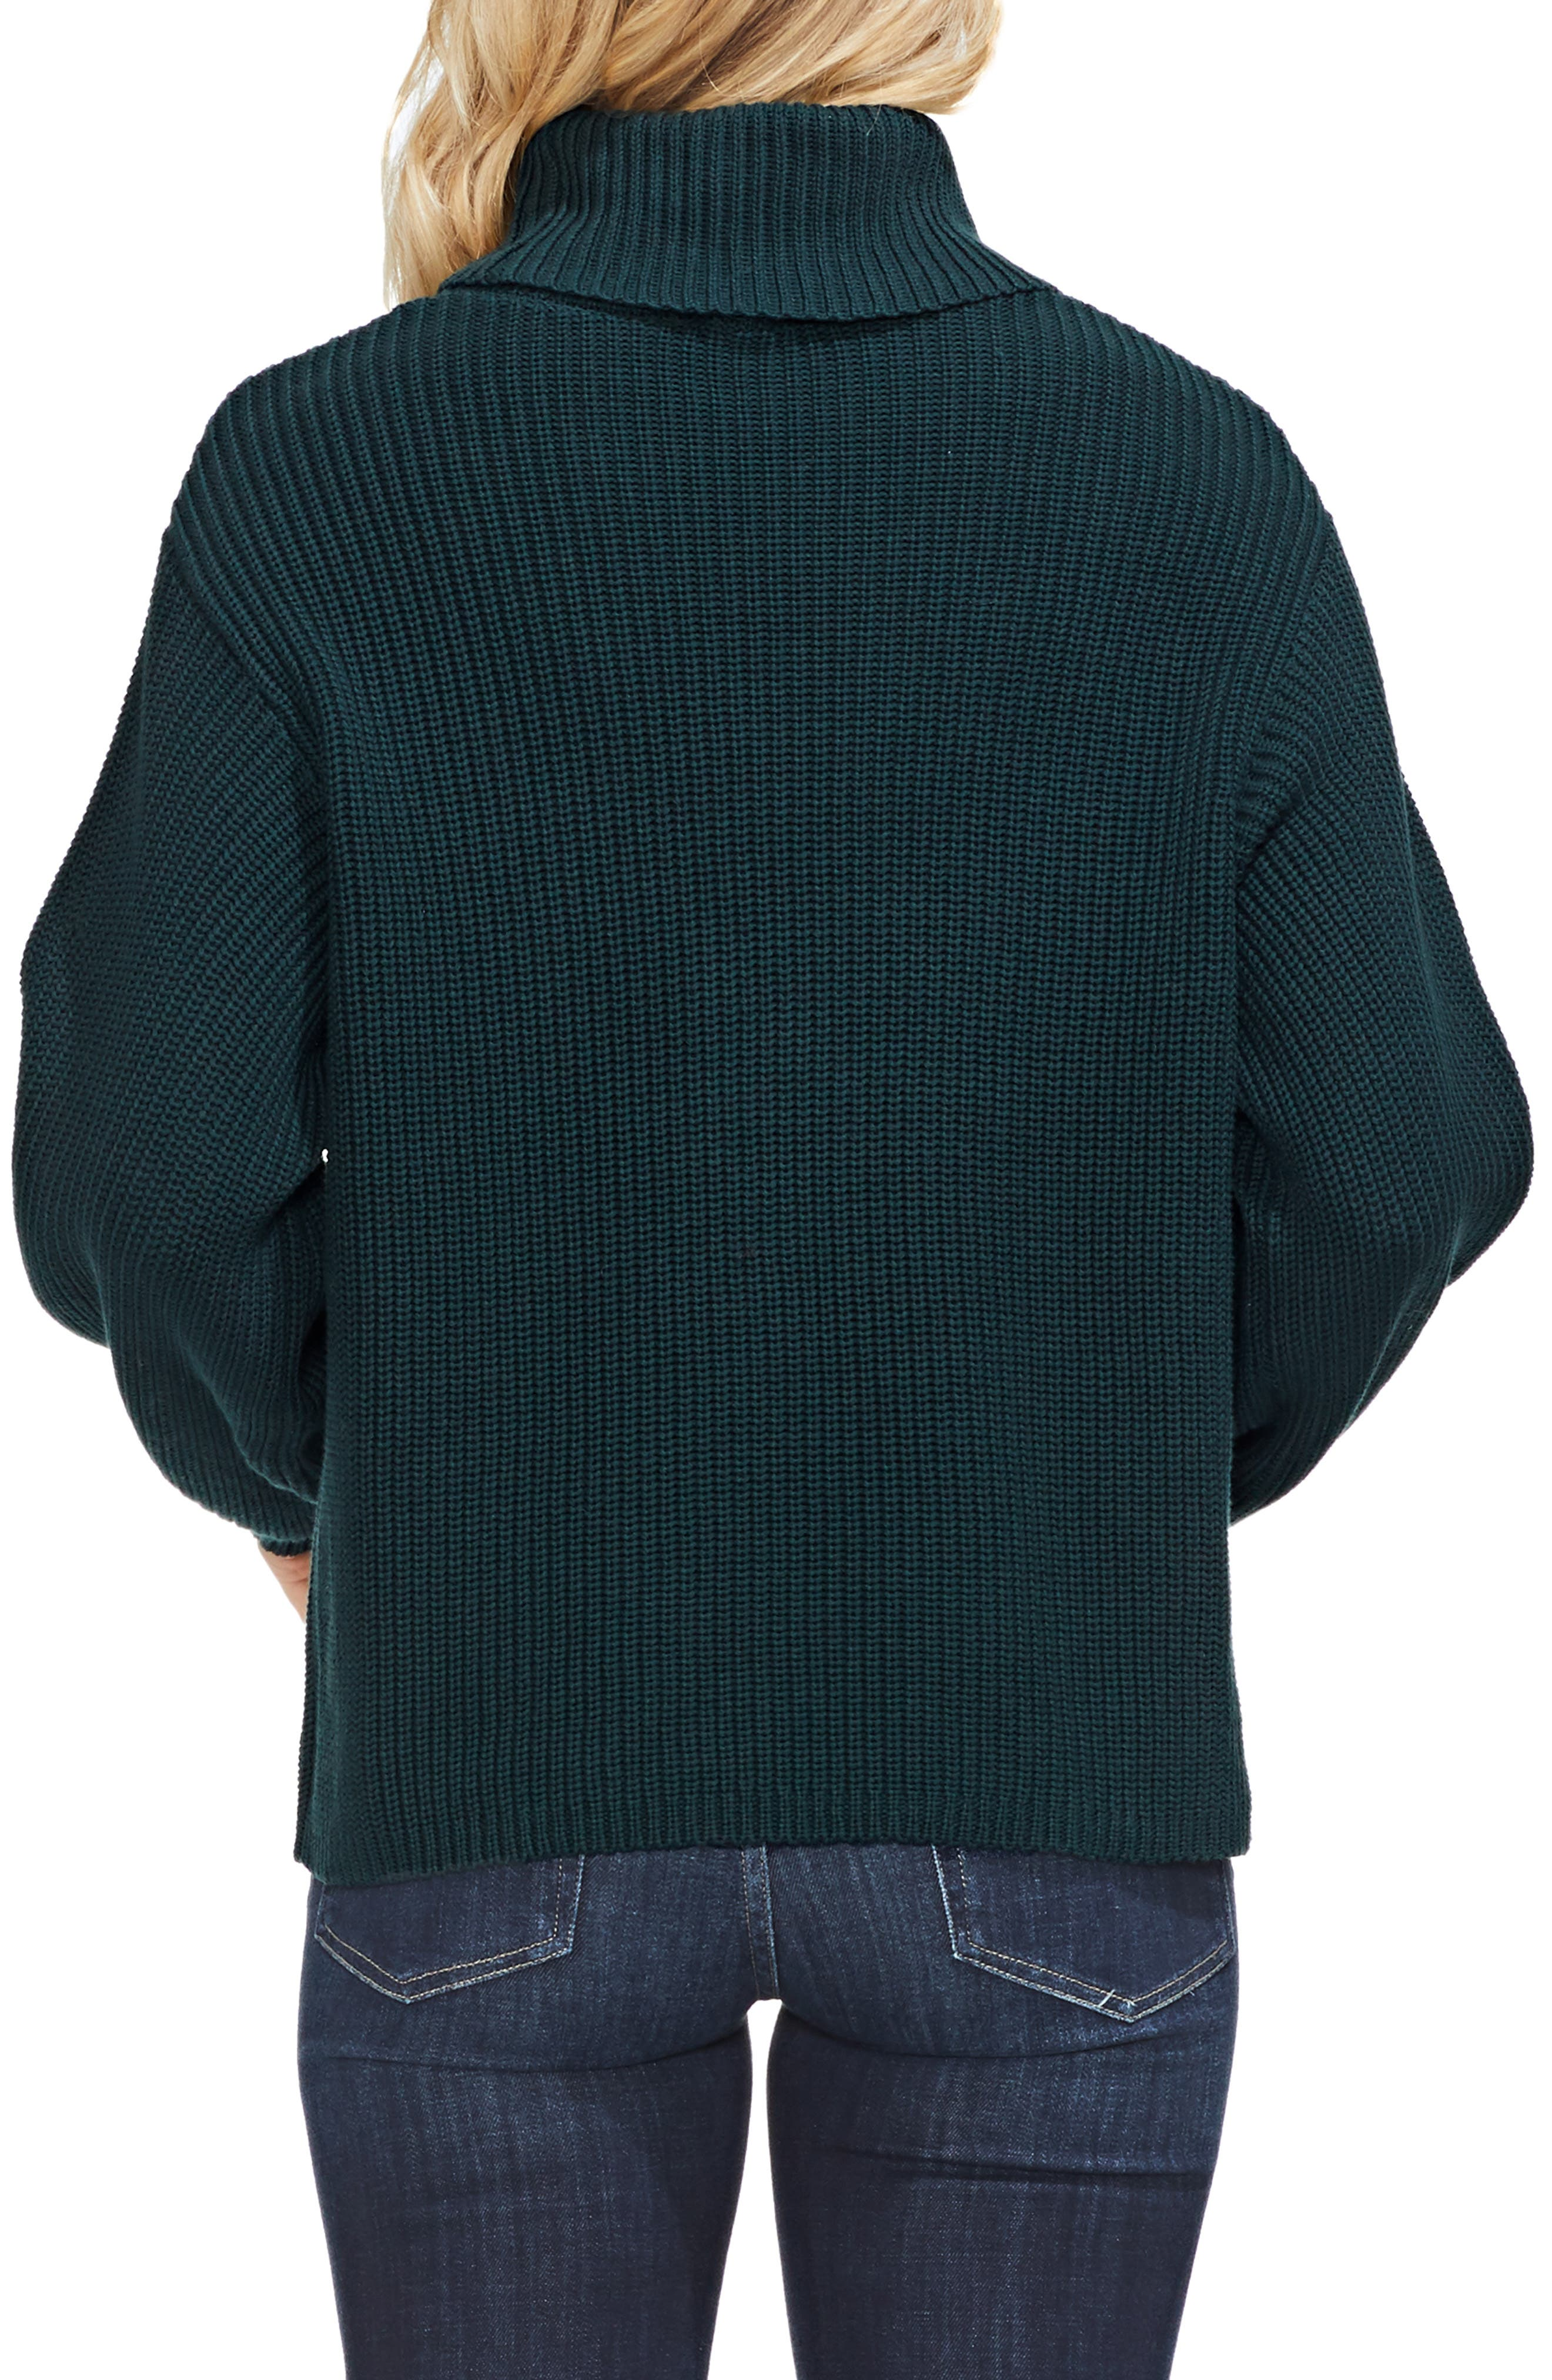 Slouchy Turtleneck Sweater,                             Alternate thumbnail 2, color,                             313